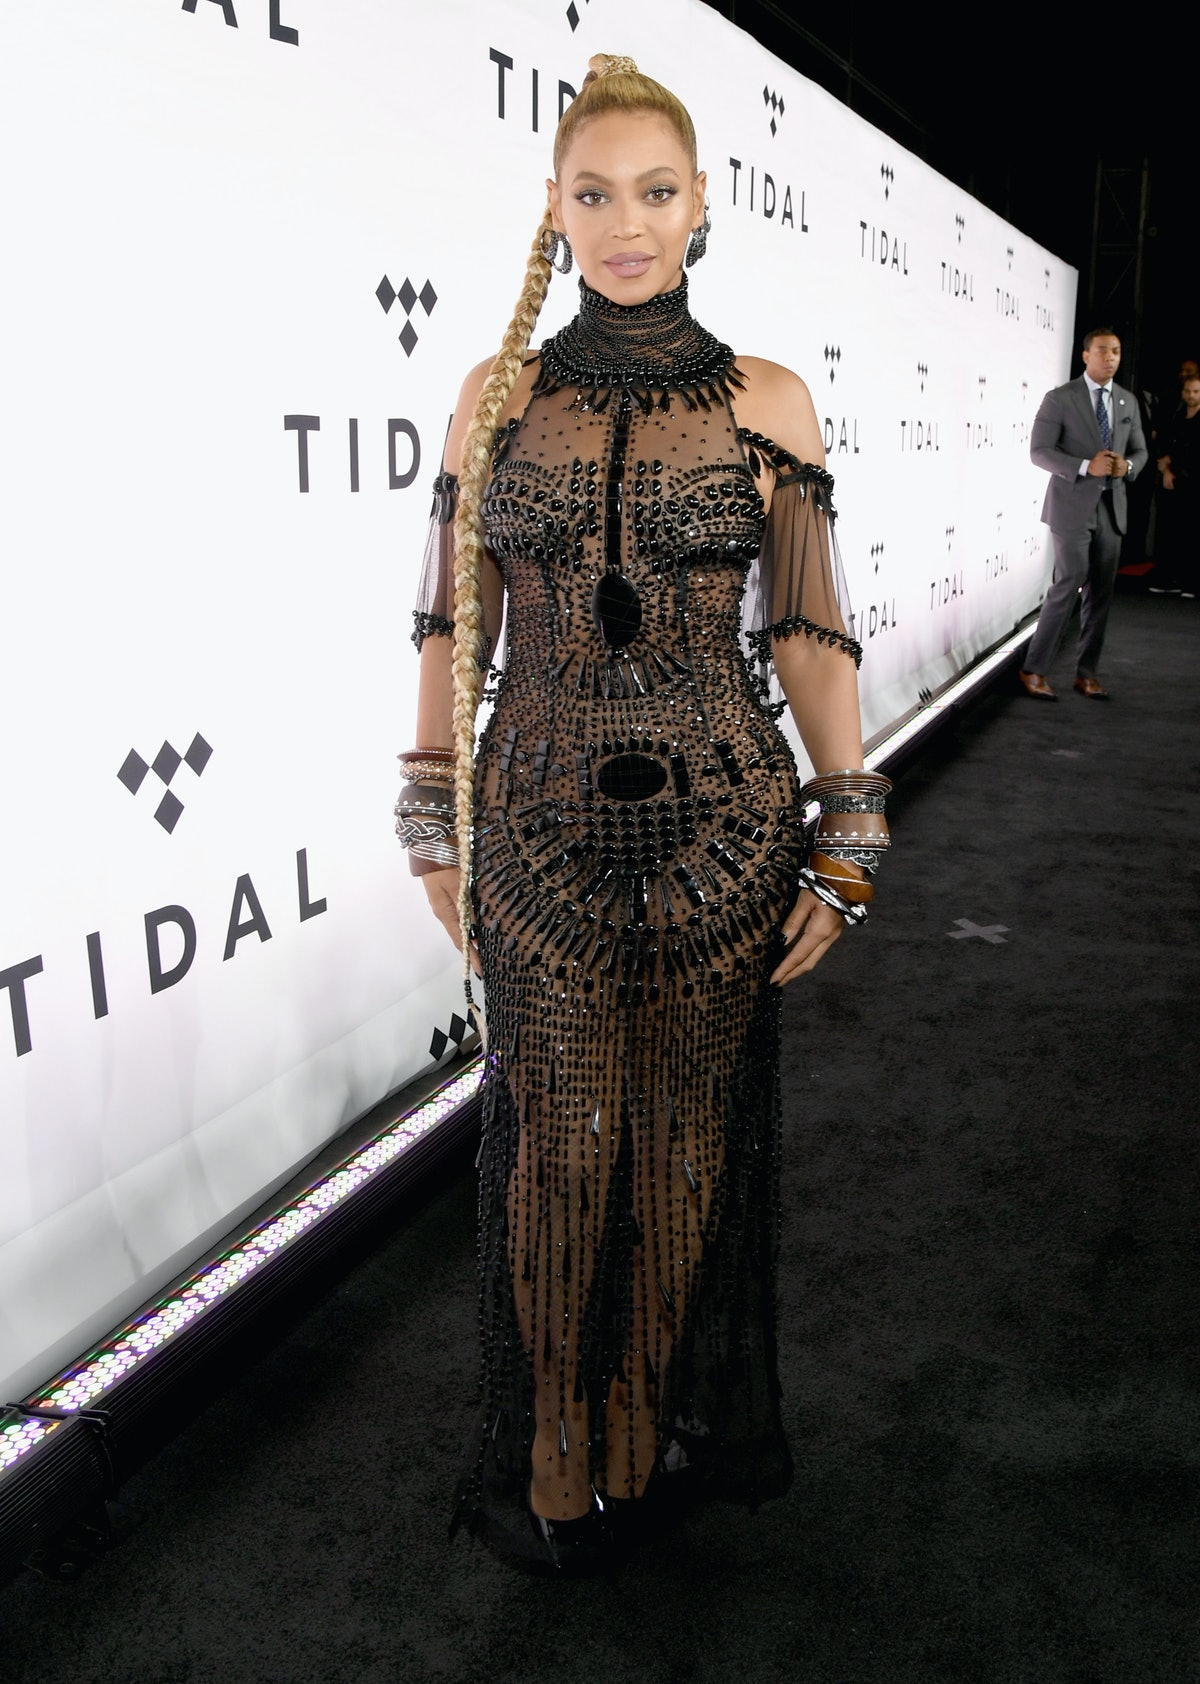 Beyonce wearing black beaded gown and high braided ponytail